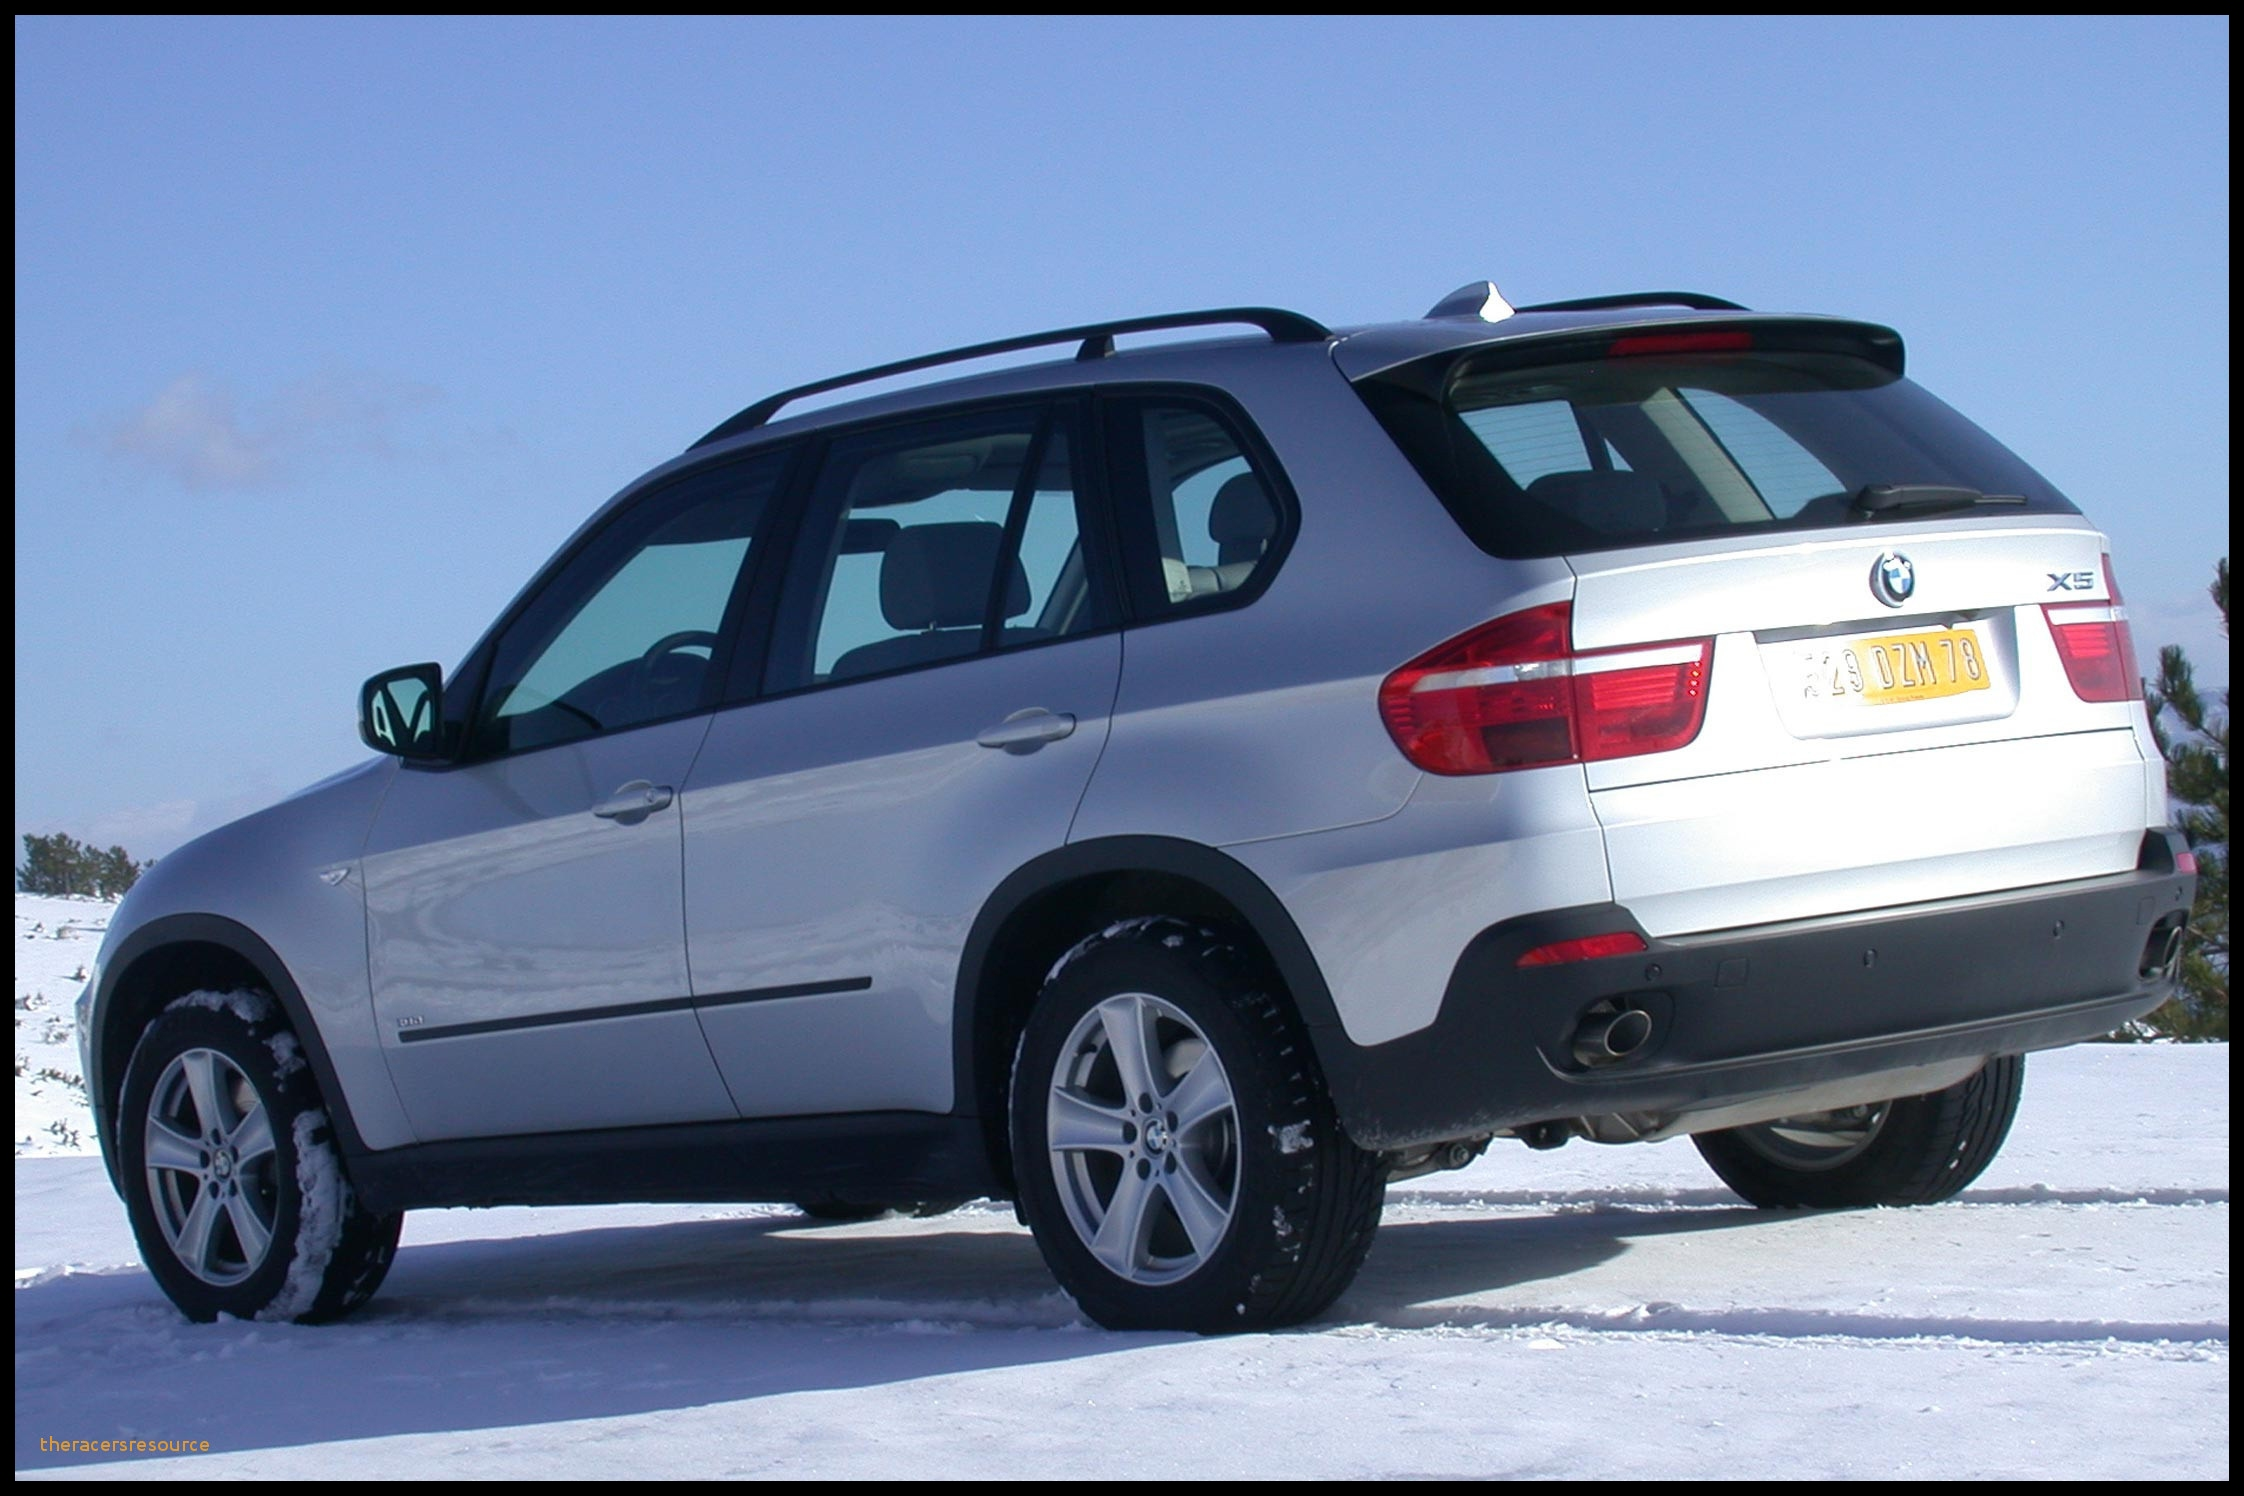 How Much is A New Bmw X5 Awesome News Suv 7 Places ford Impressionnant Essai Bmw